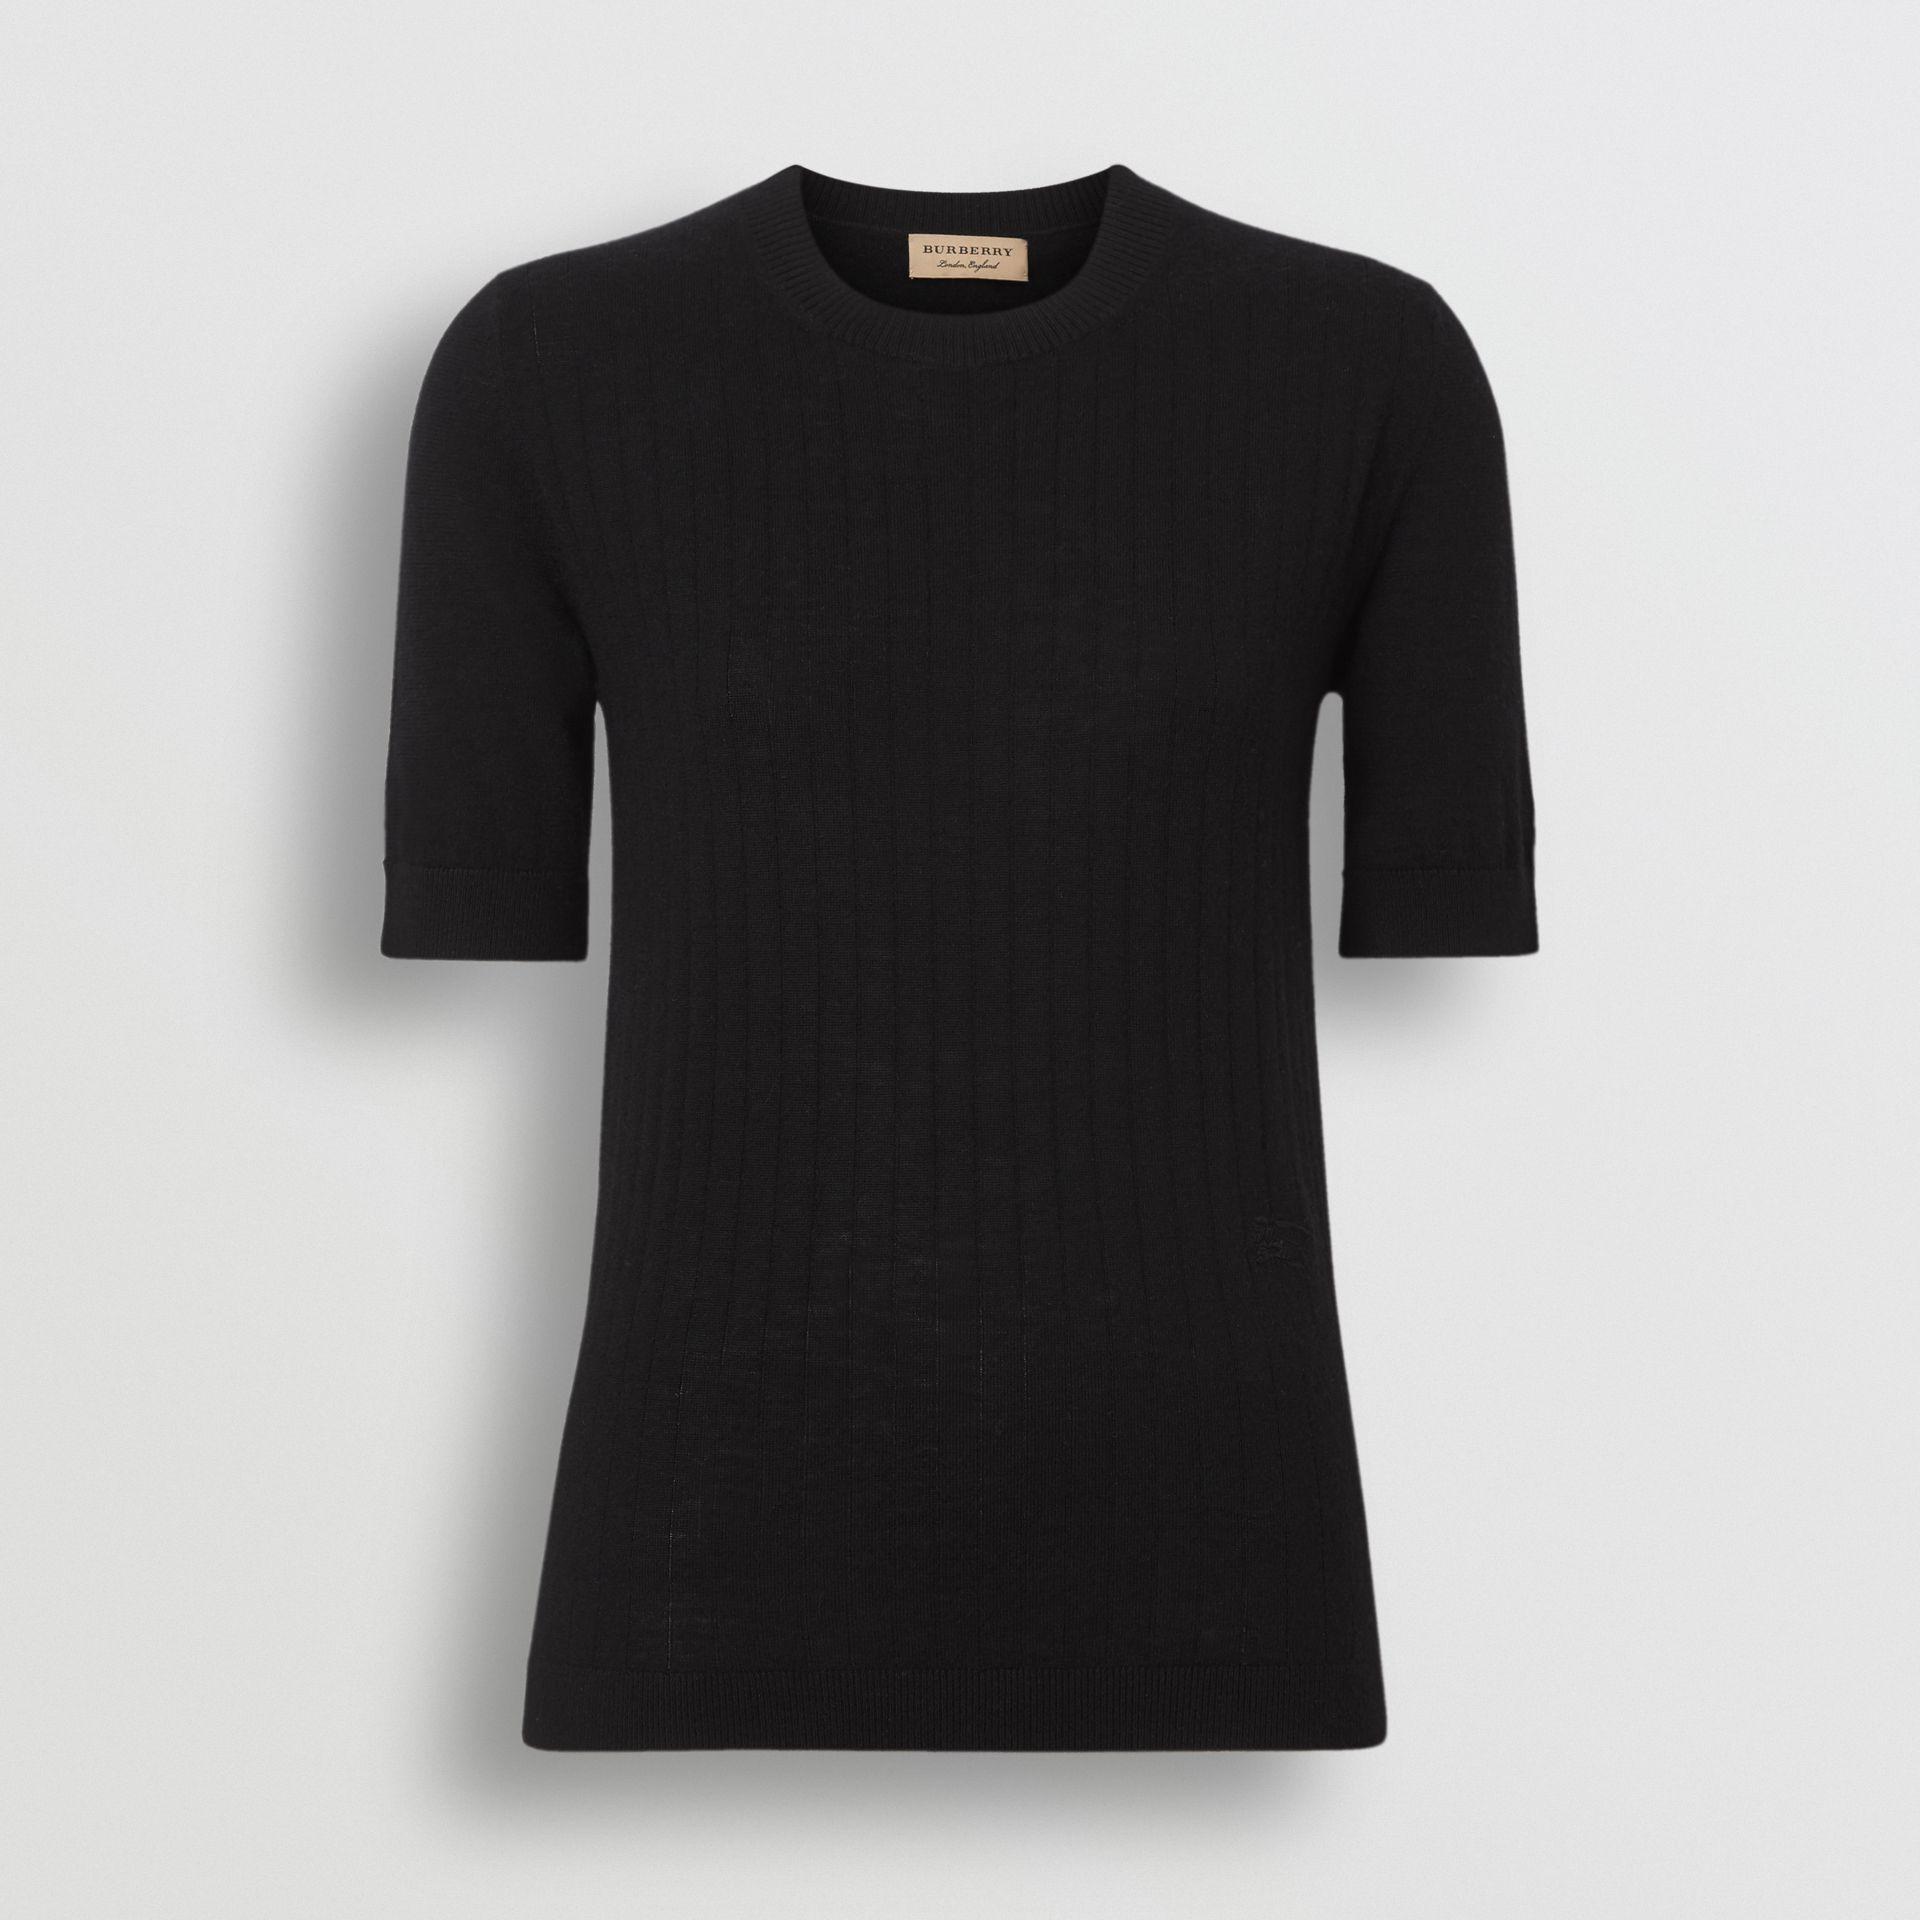 Short-sleeve Rib Knit Cashmere Sweater in Black - Women | Burberry United Kingdom - gallery image 3